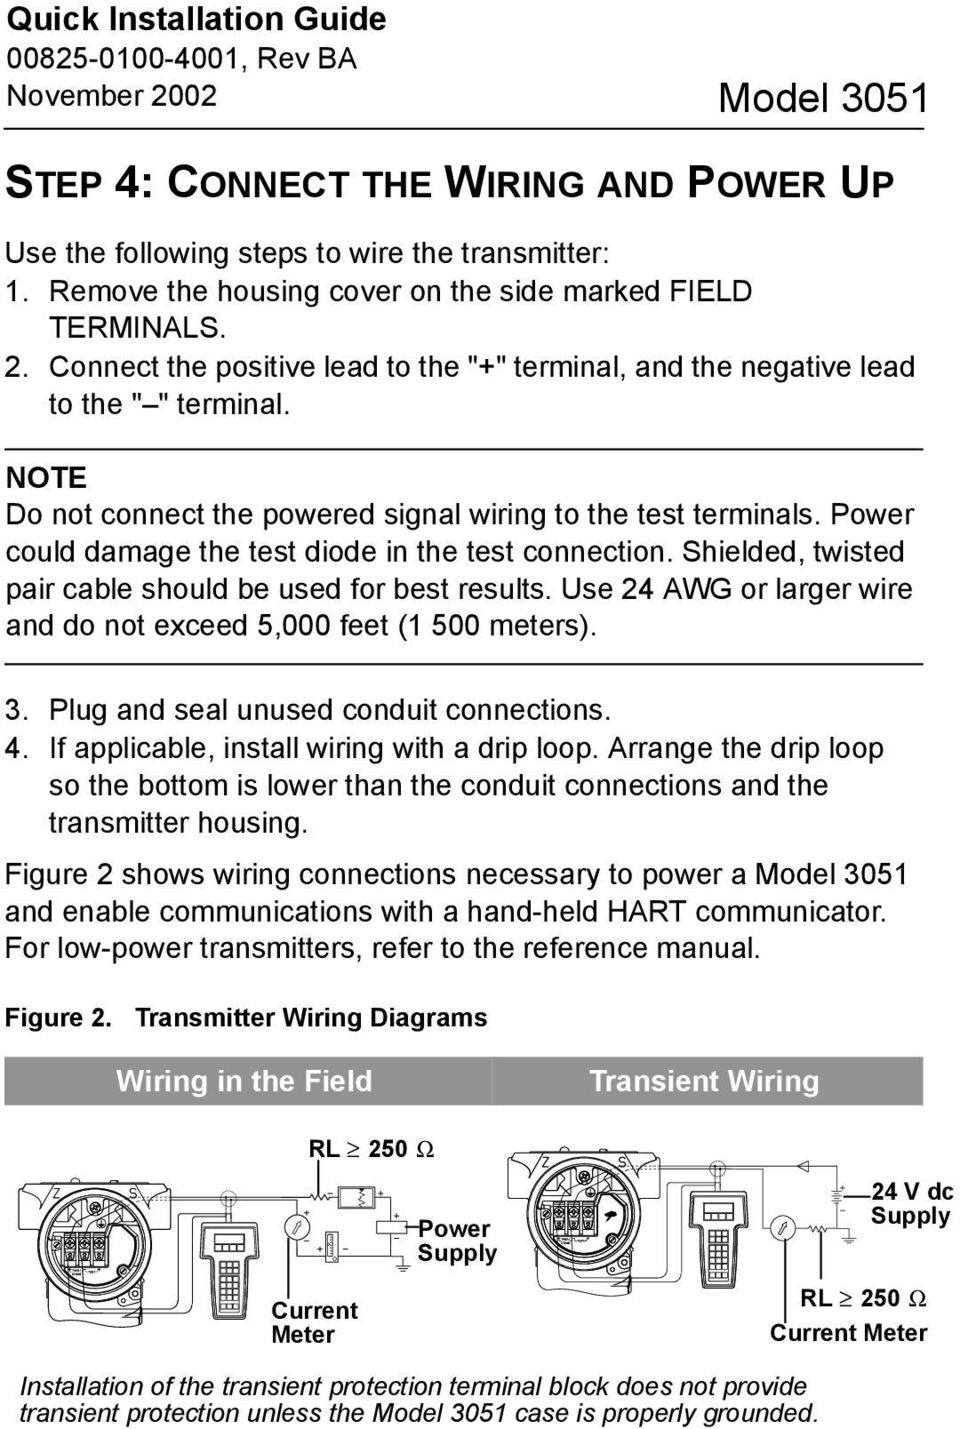 Model 3051 Pressure Transmitter With Hart Protocol Pdf Wiring Diagram Power Could Damage The Test Diode In Connection Shielded Twisted Pair Cable